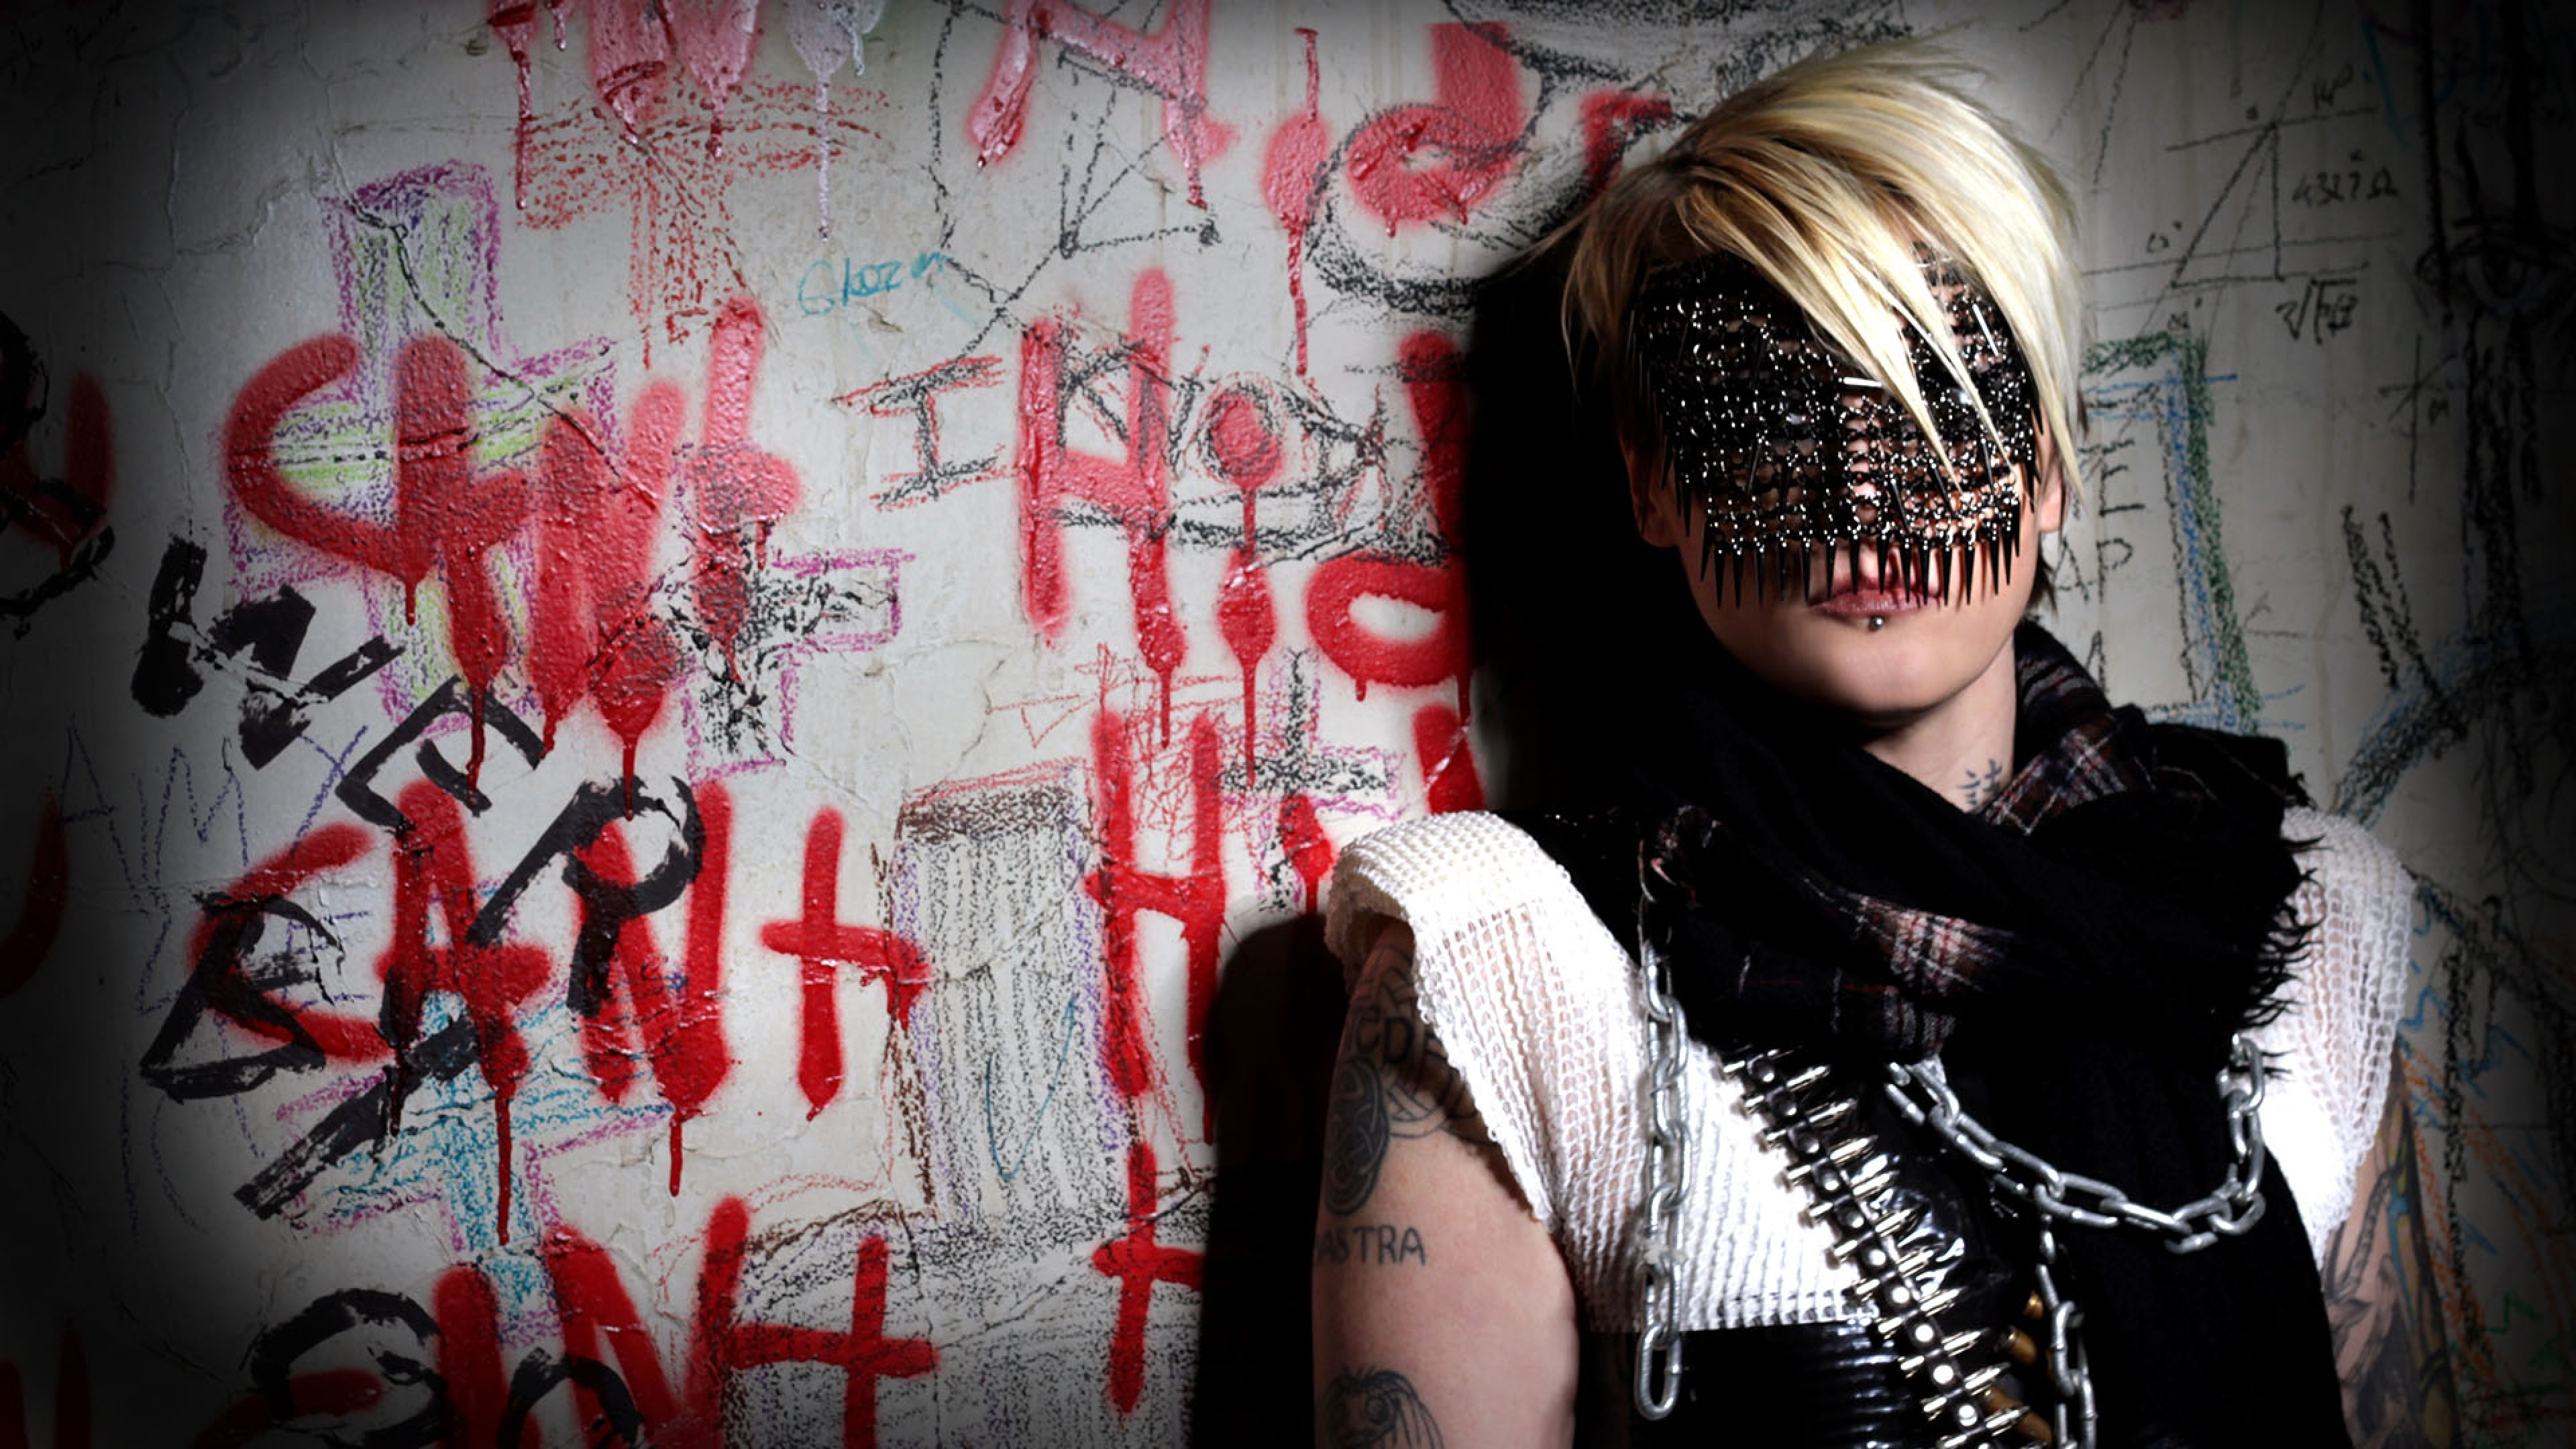 3840x2160 Wallpaper otep, girl, blonde, wall, tattoo